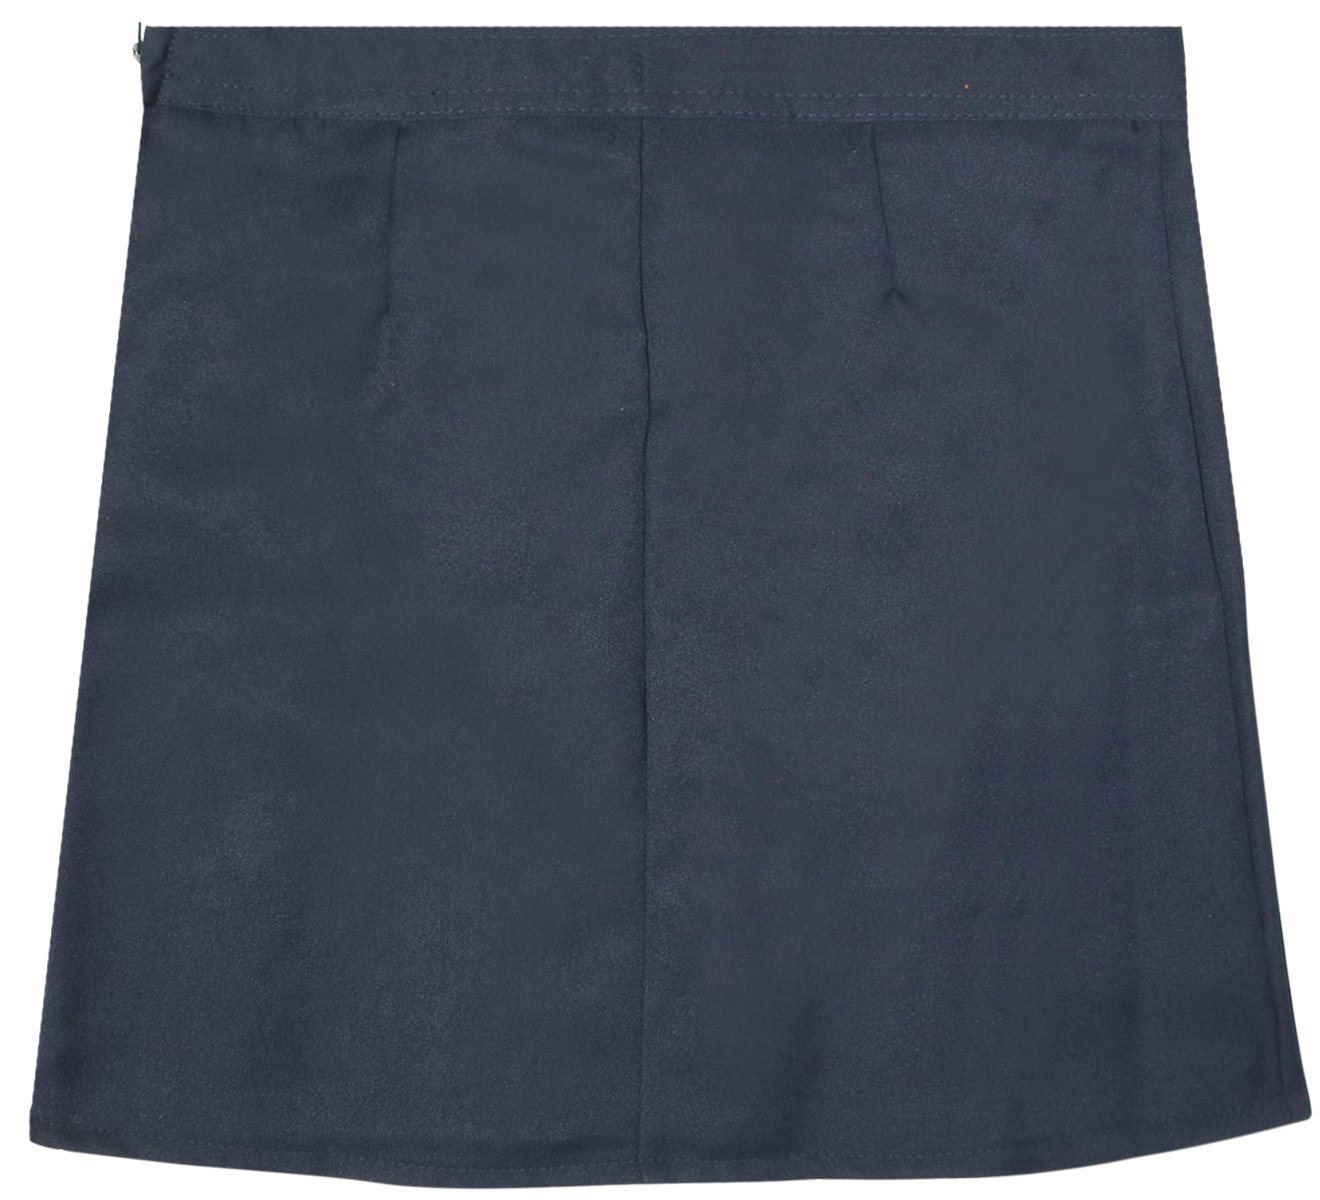 Beverly Hills Polo Club Girls School Uniform Double Waist Tab Pleated Scooted, Navy, Size 6' by Beverly Hills Polo Club (Image #5)